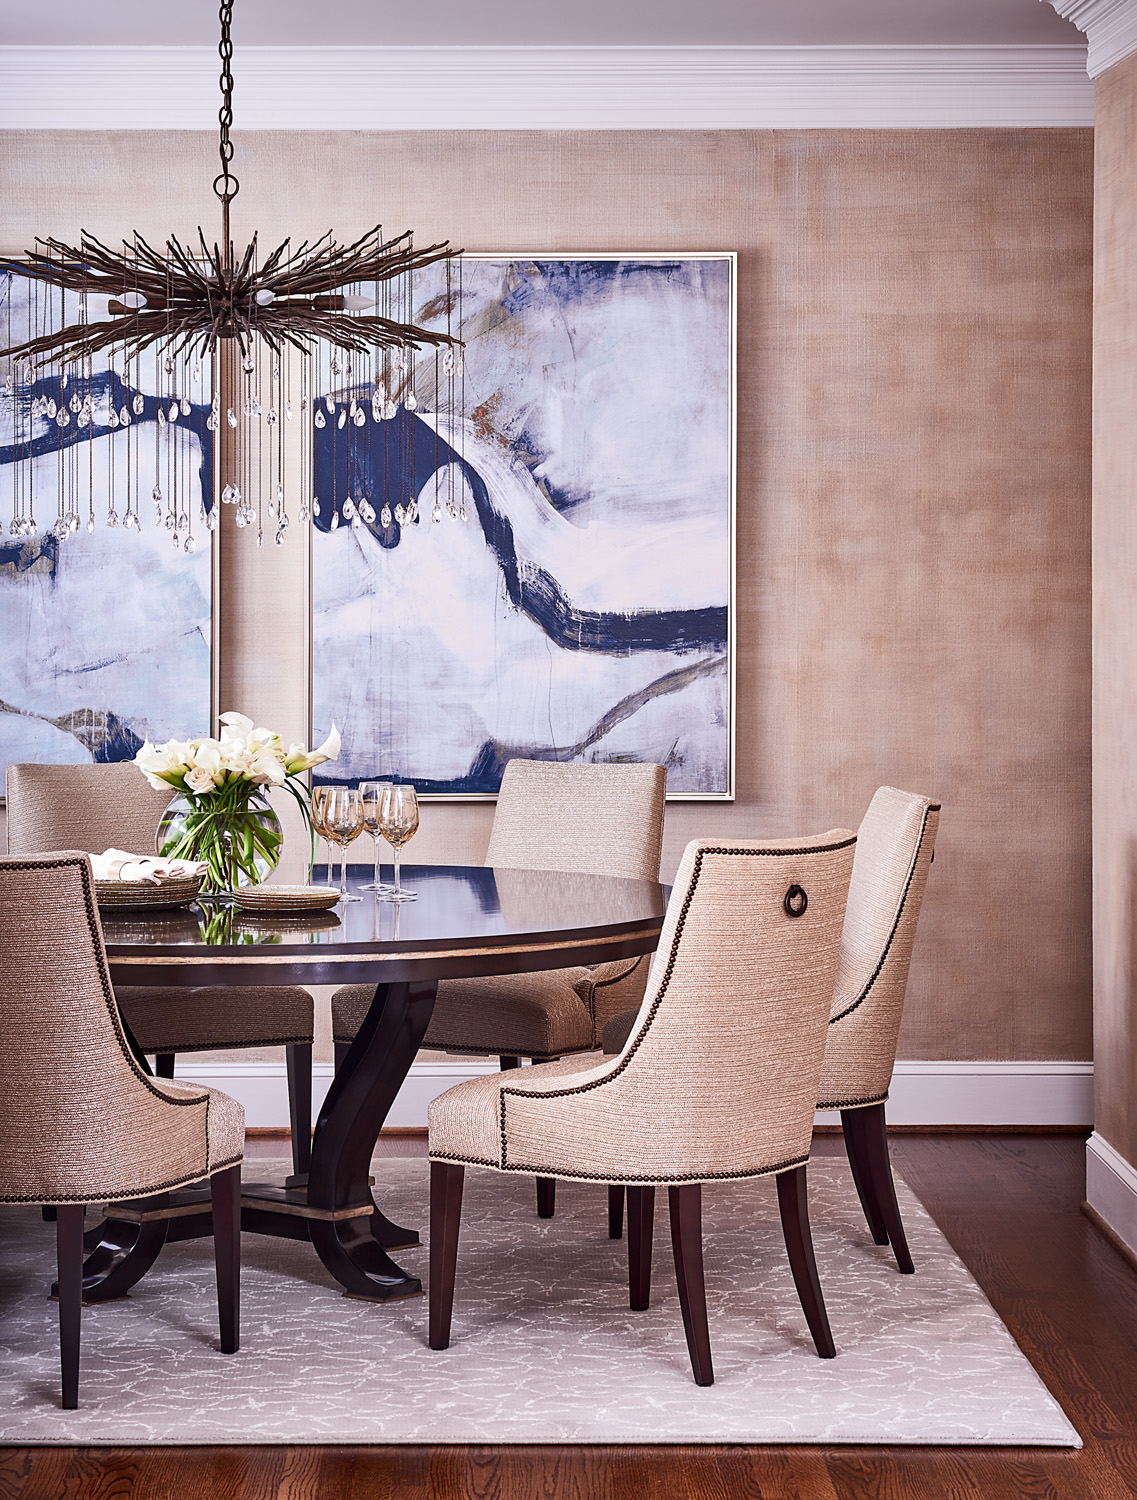 Transitional dining room with modern art in blue and round dining table with textured chairs with nailhead trim